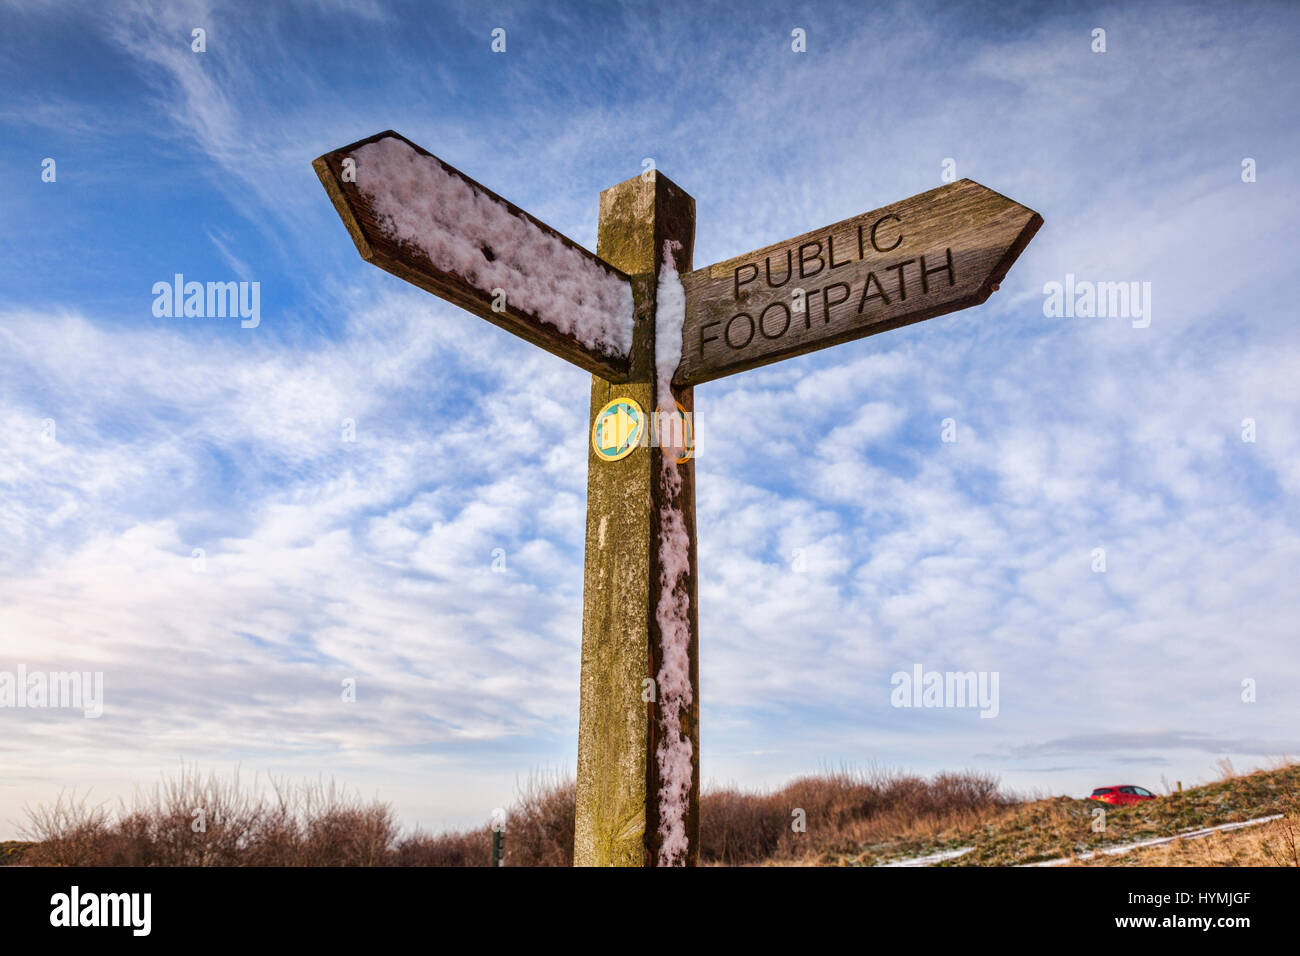 Public footpath sign with snow on it, at Flamborough Head, East Yorkshire, England, UK. - Stock Image